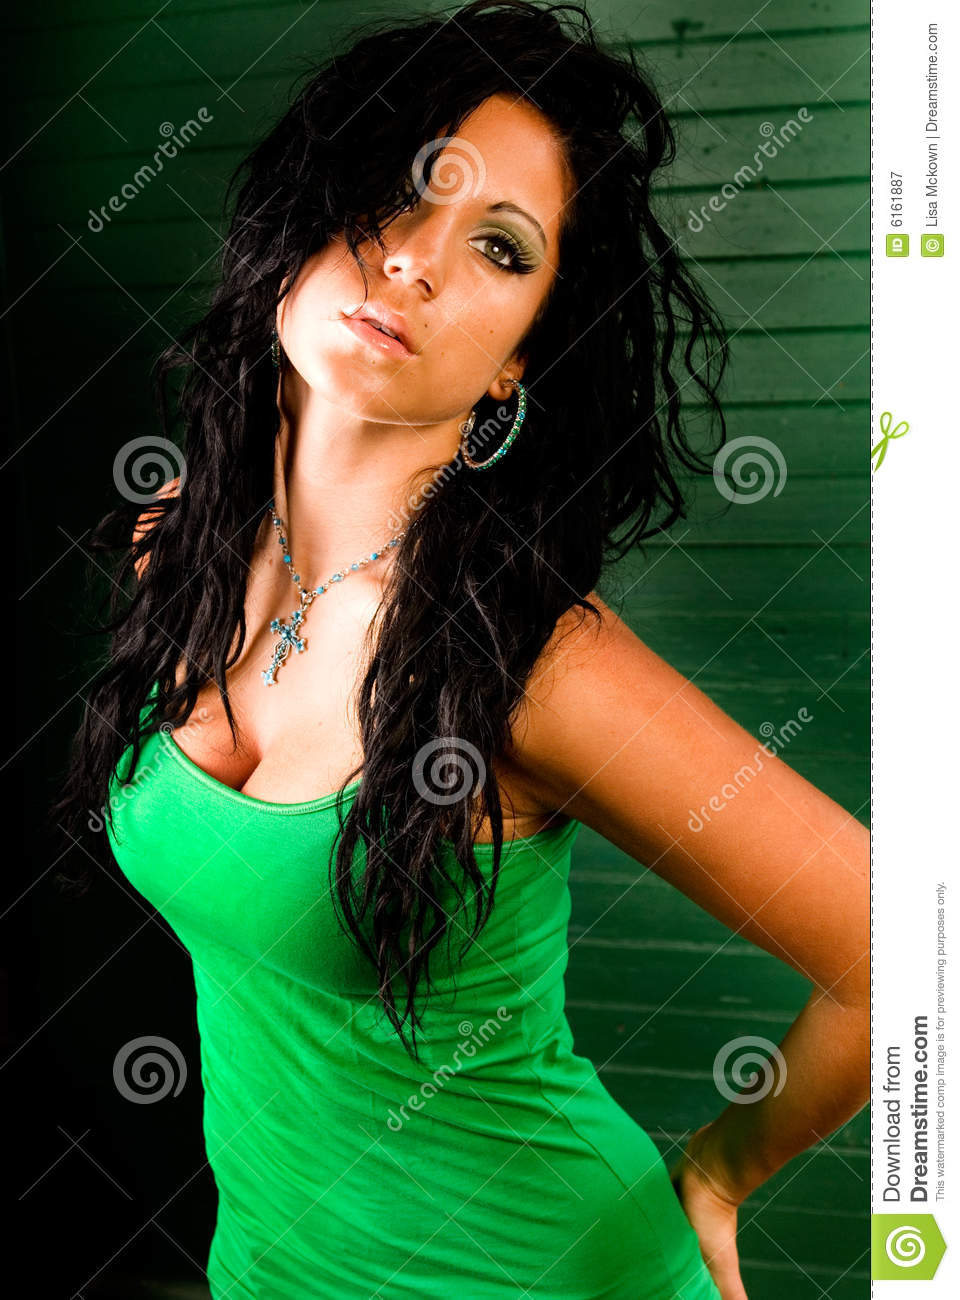 1 514 Native American Female Fashion Model Photos Free Royalty Free Stock Photos From Dreamstime